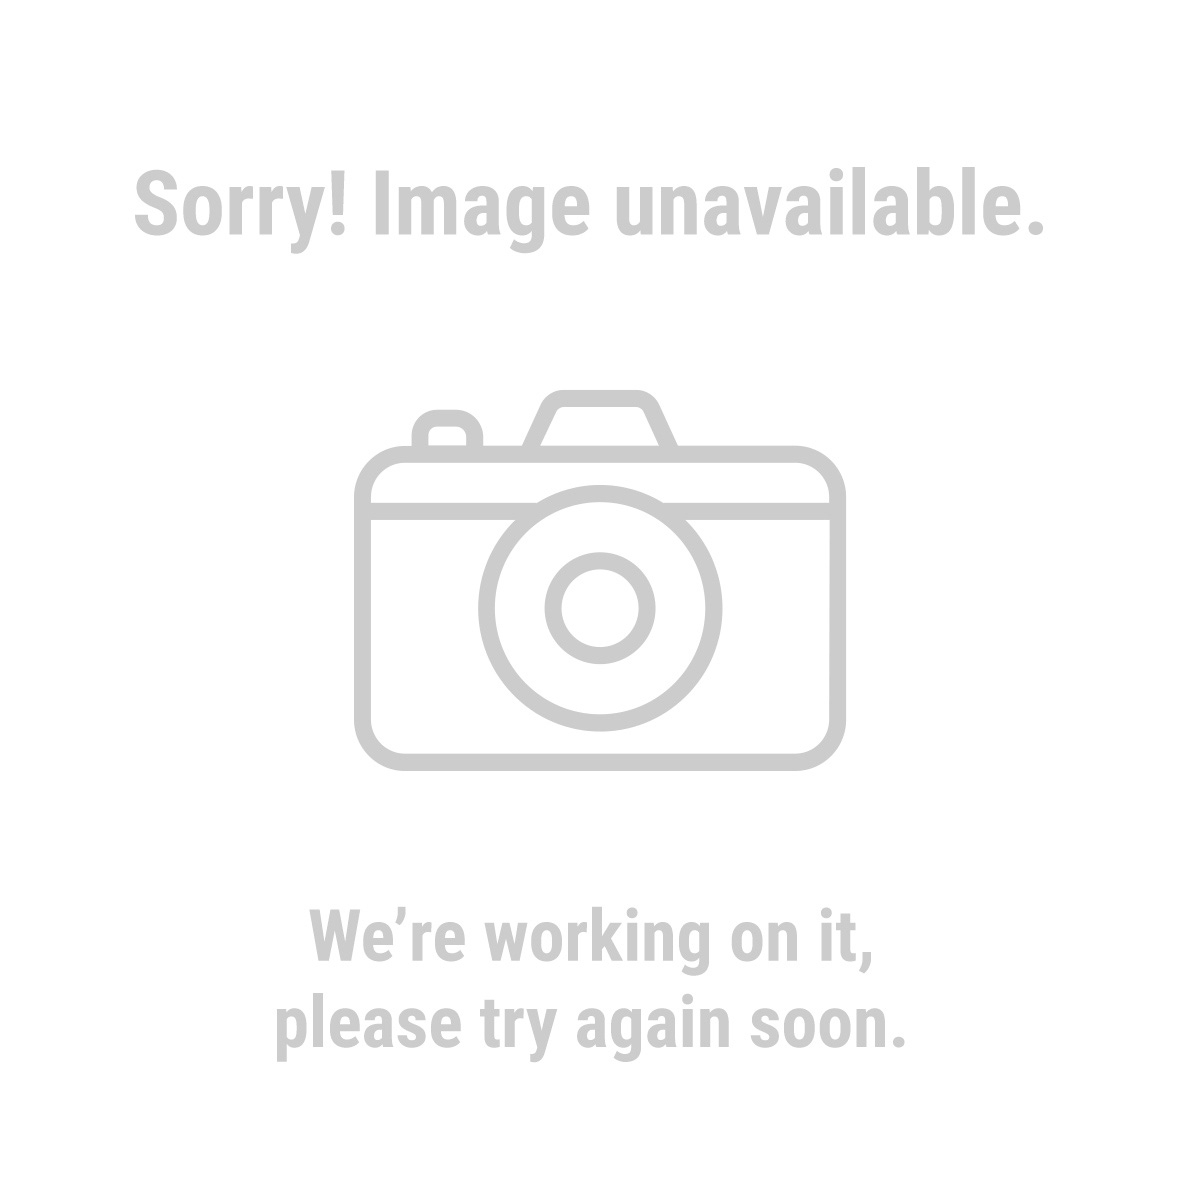 Western Safety 99677 Oil-Resistant PVC Long Cuff Gloves